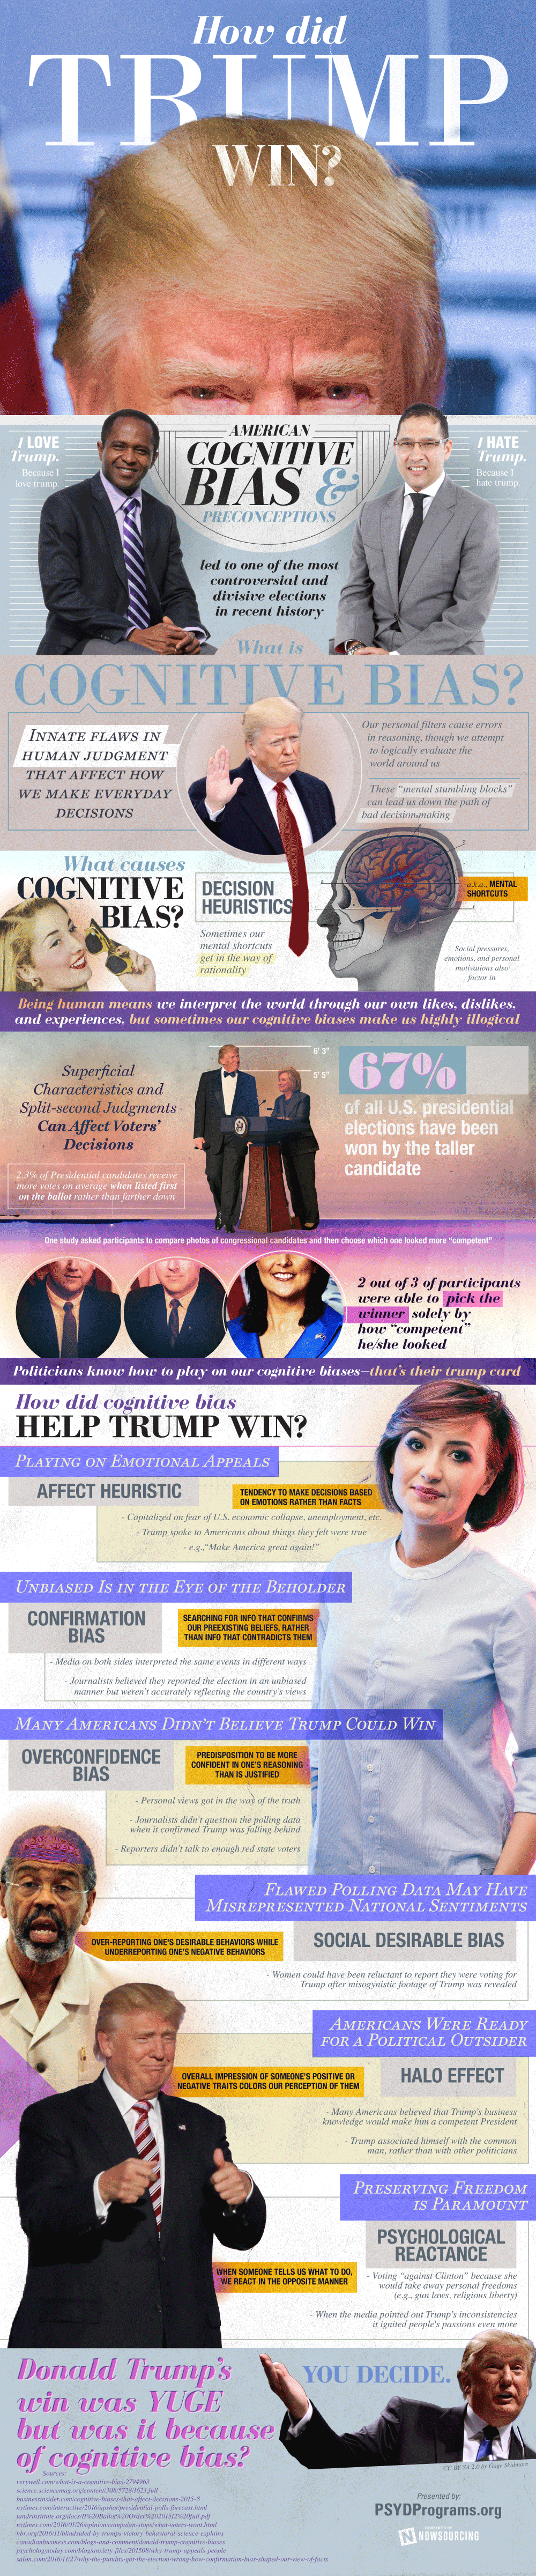 How Did Trump Win the Election [Infographic]